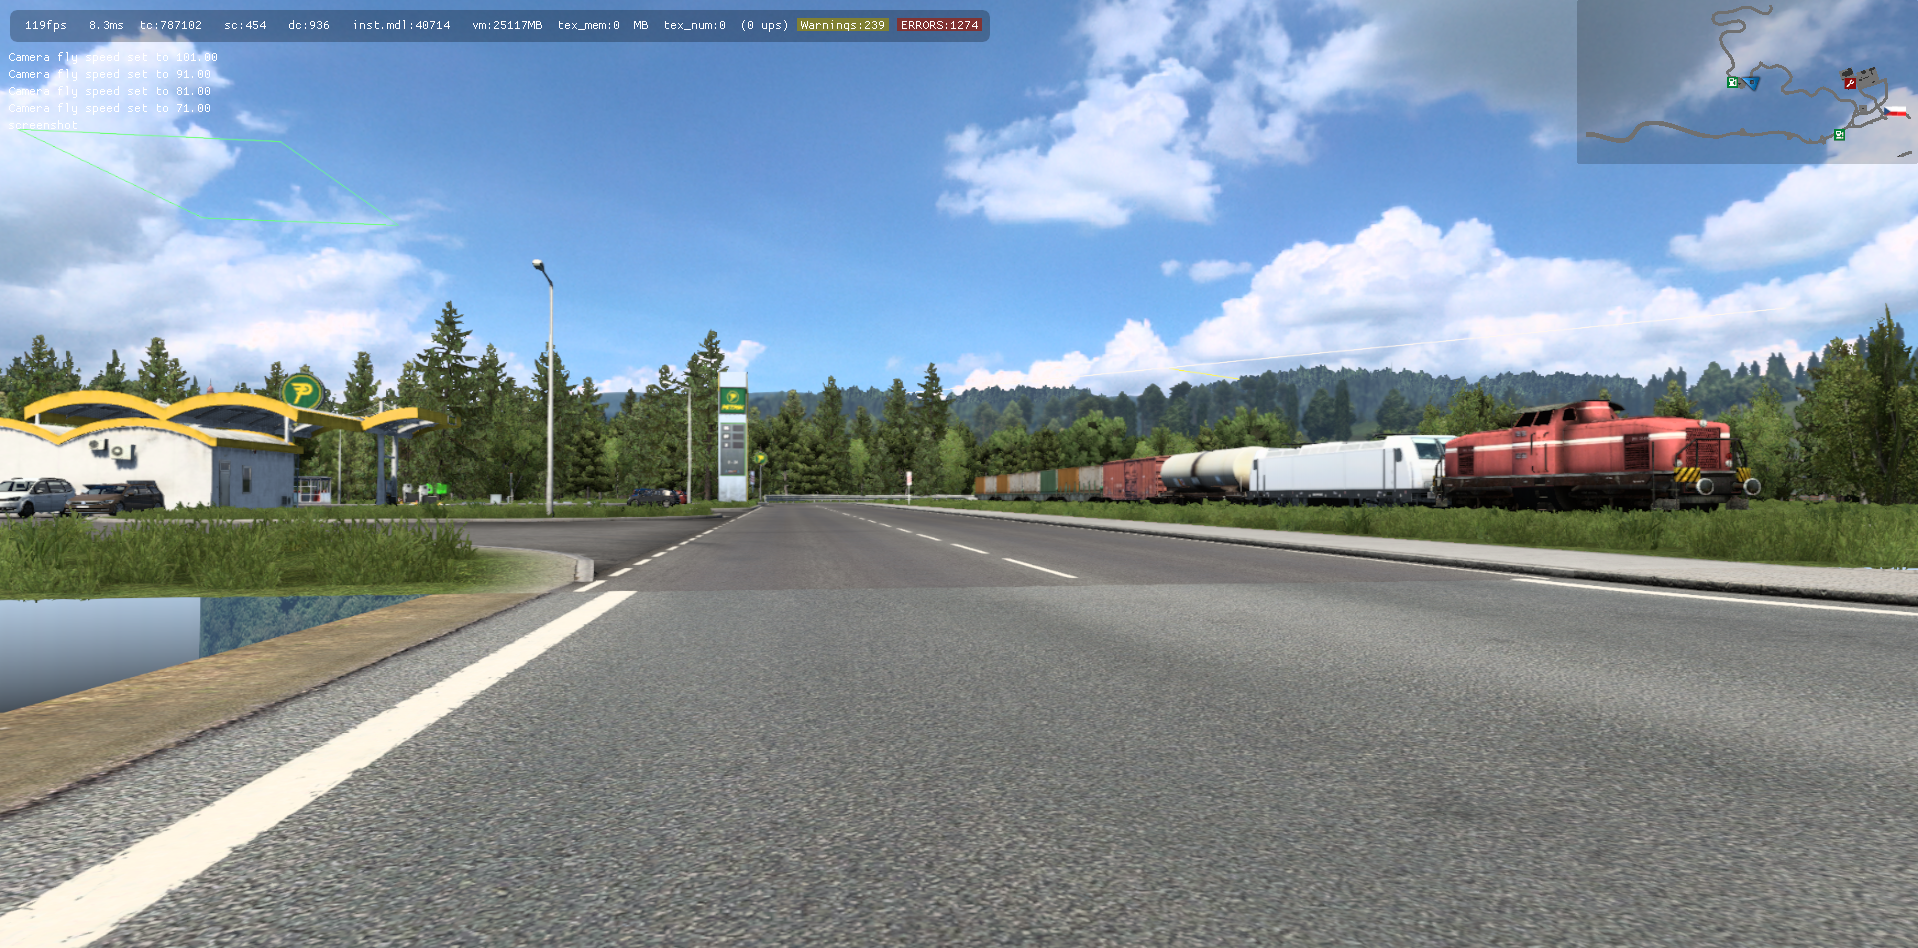 ets2_20210921_212309_00.png